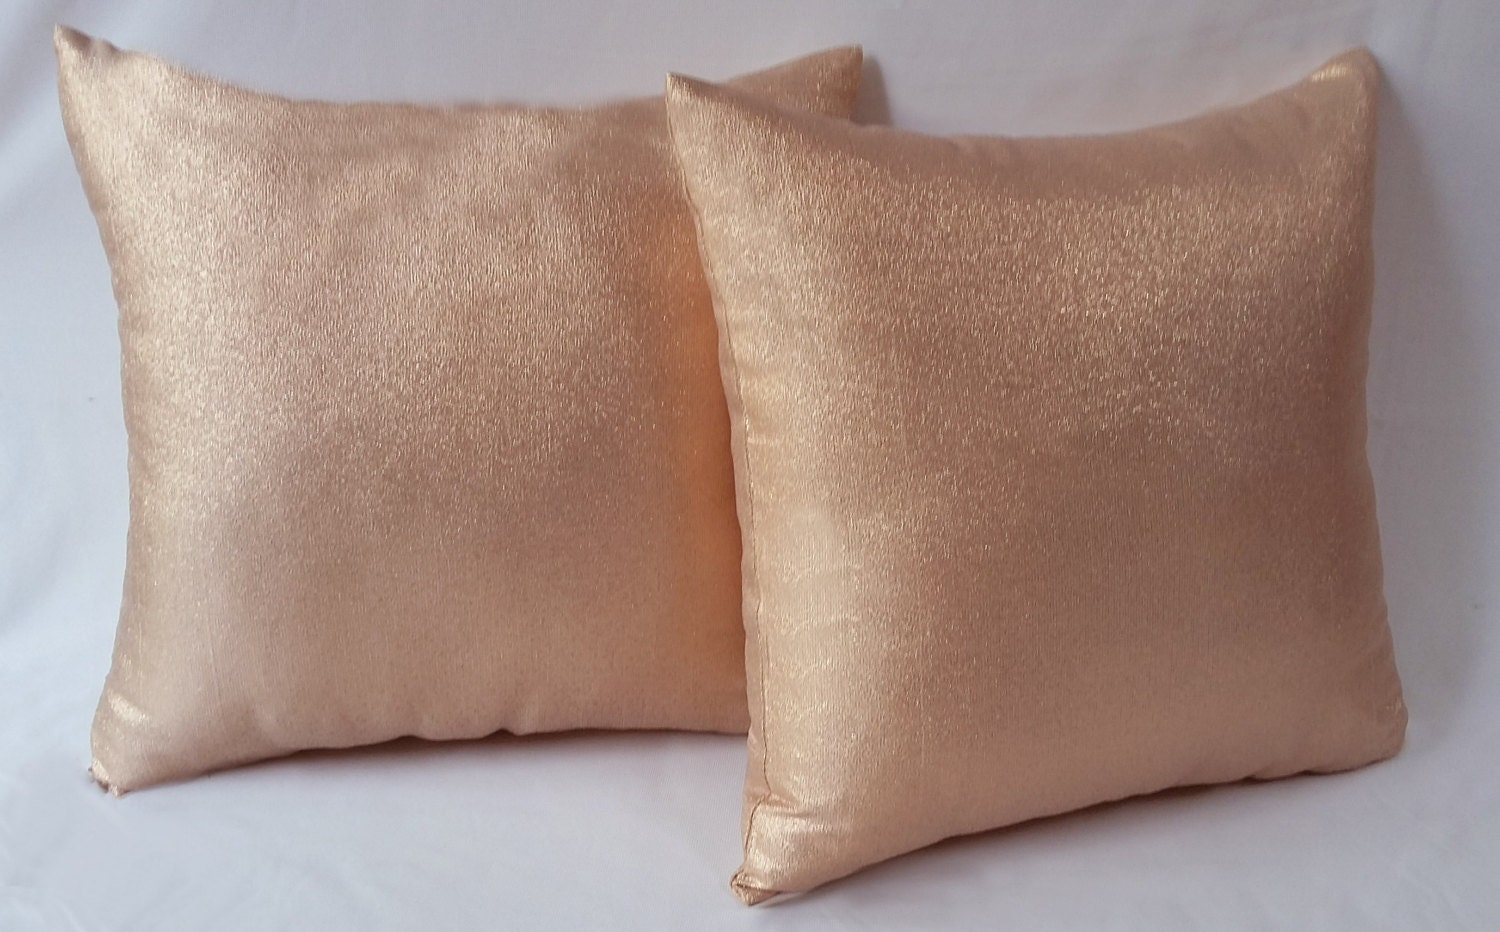 rose gold pillow rose gold decorative pillow rose gold decor throw pillow - Gold Decorative Pillows